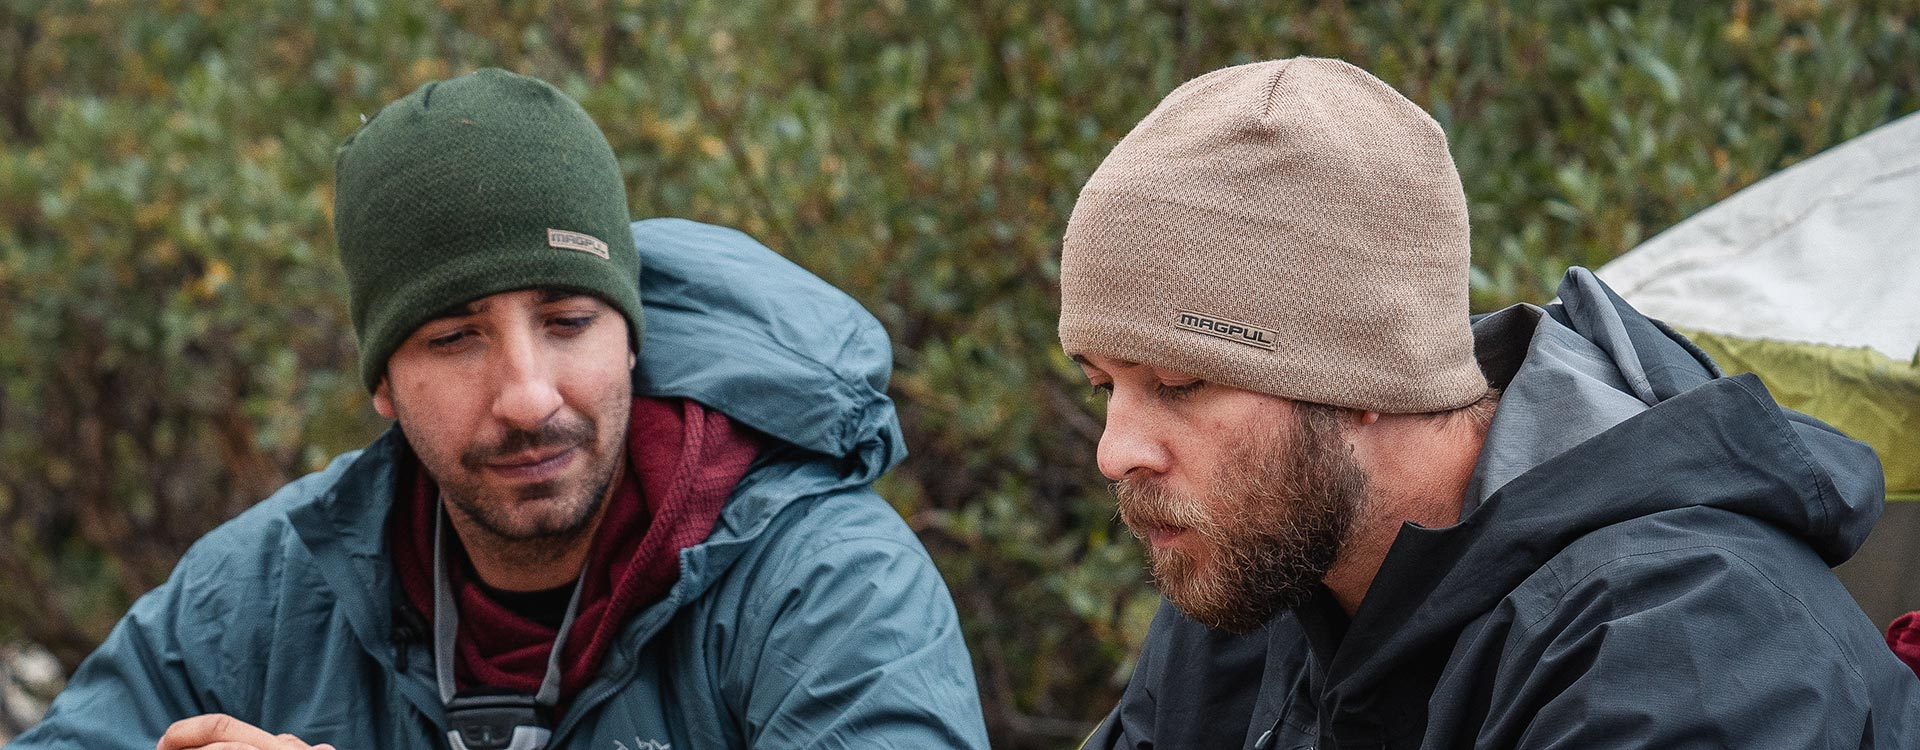 Green and Brown Magpul Tundra Beanies worn by two jacketed men camping outdoors with a tent in the background